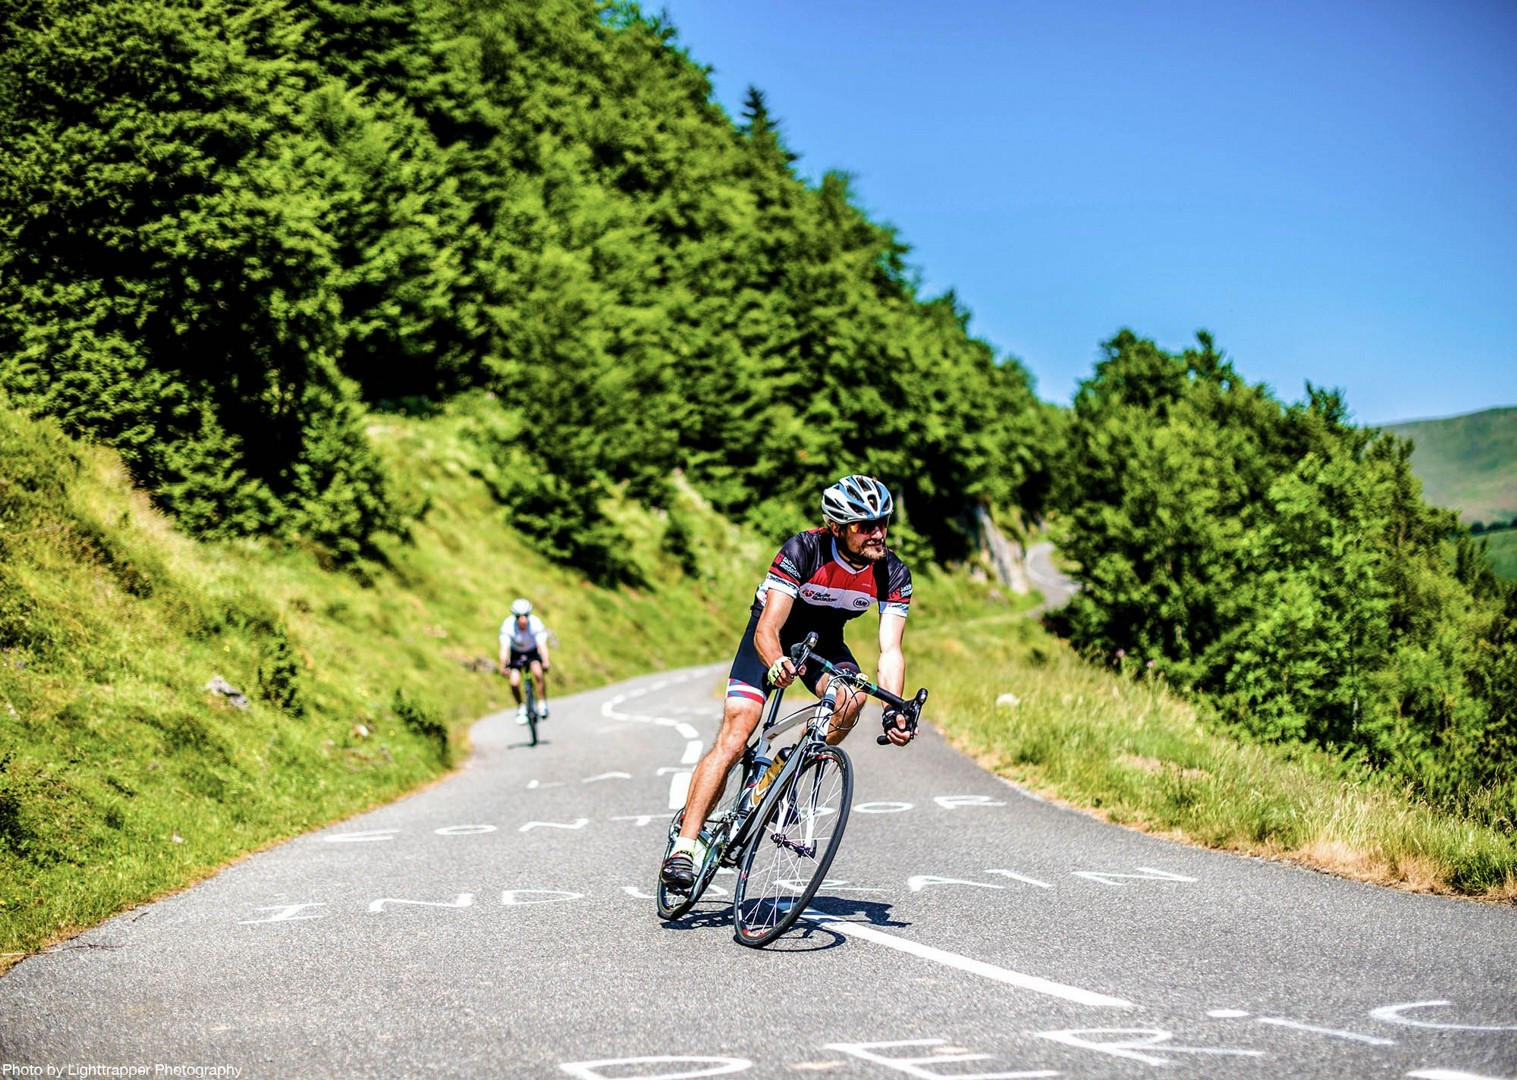 pyrenees-fitness-week-guided-road-cycling-holidays-france.jpg - France - Pyrenees Fitness Week (Grade 3-4) - Guided Road Cycling Holiday - Road Cycling